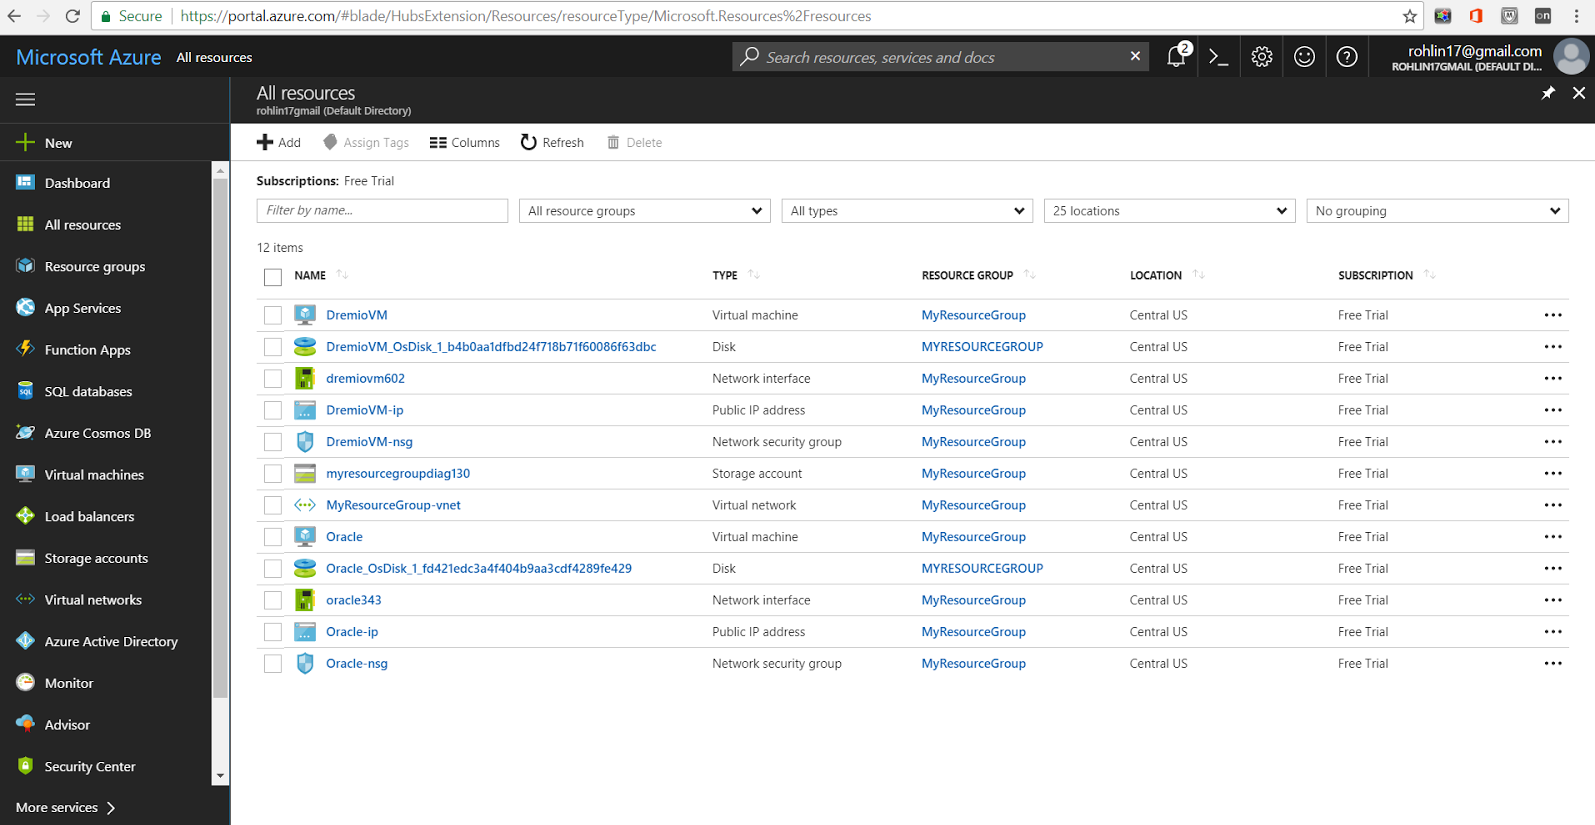 View resources on Azure